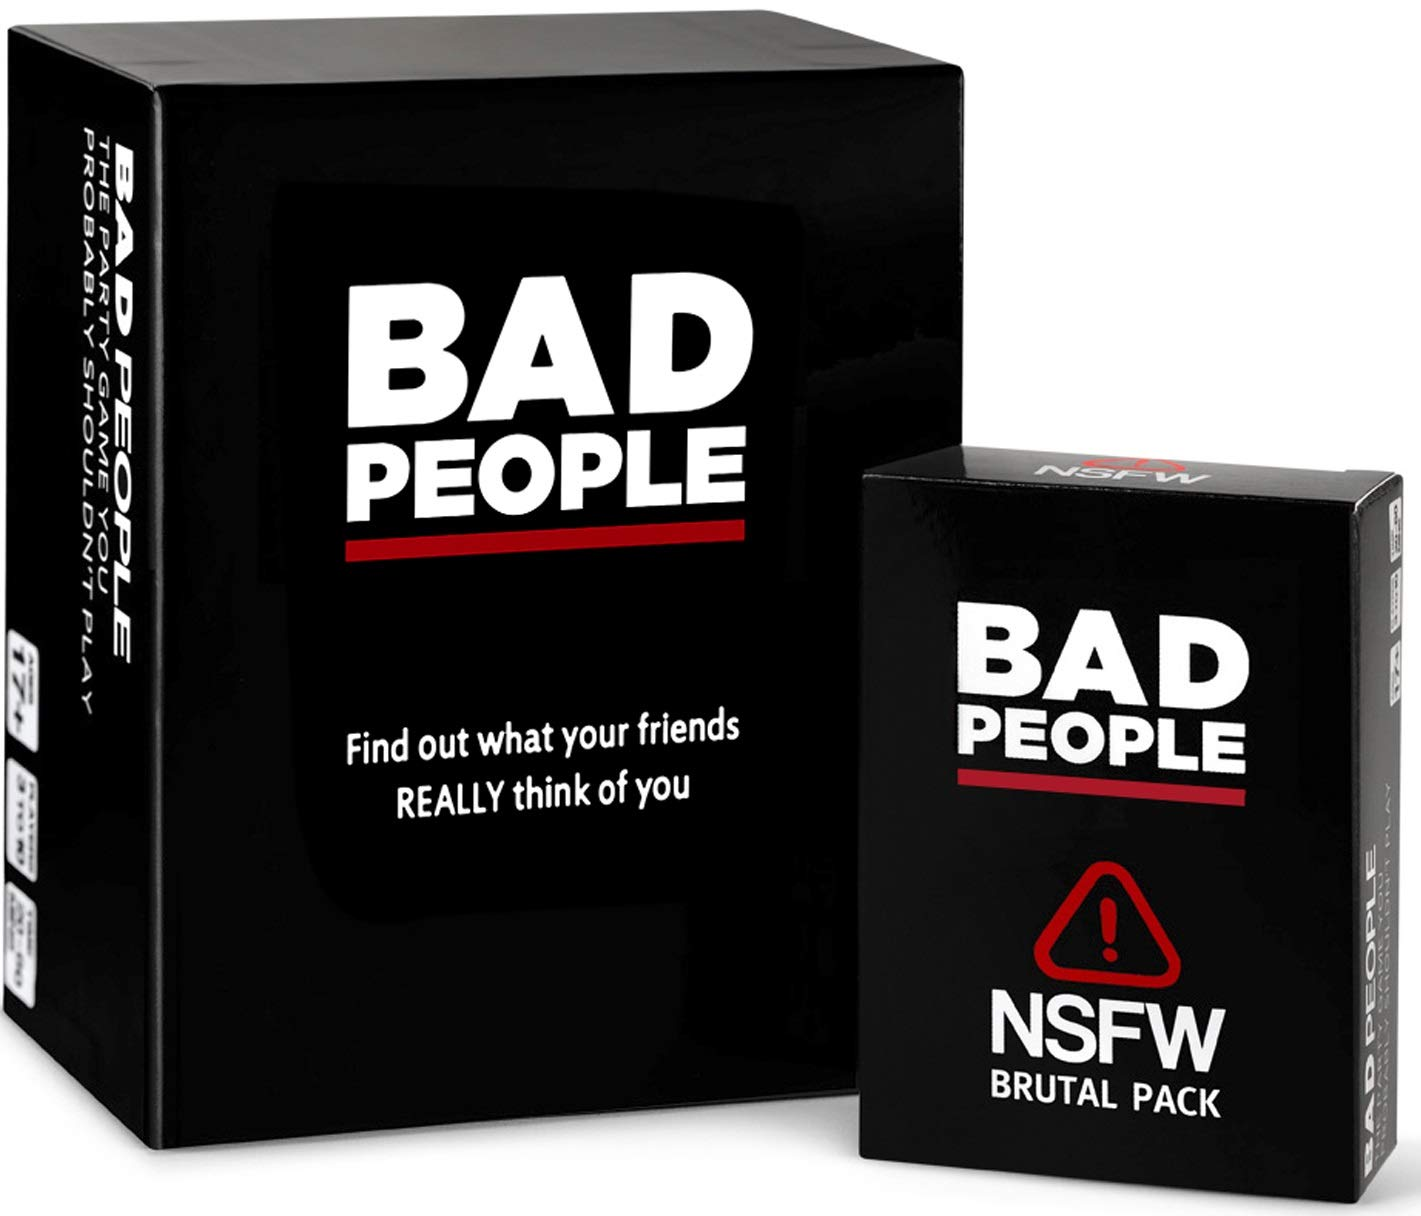 BAD PEOPLE - The Party Game You Probably Shouldn't Play + The NSFW Expansion Pack